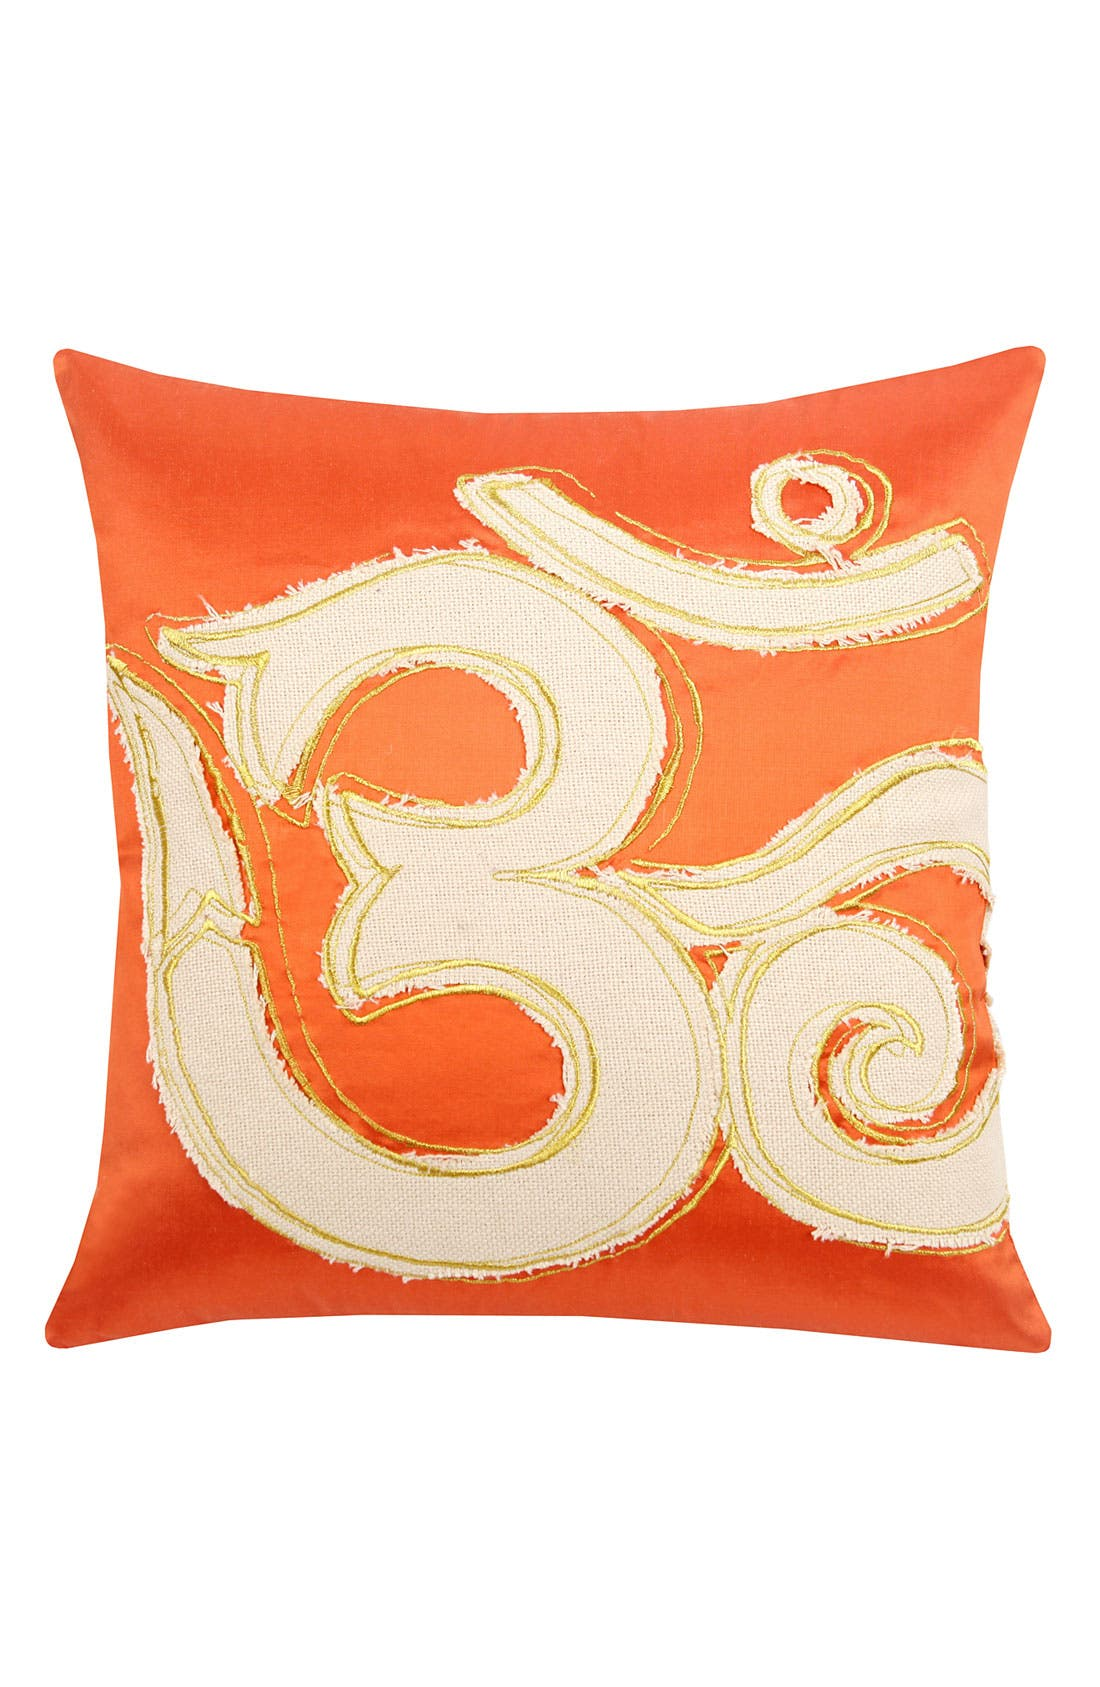 'Om' Coral Pillow,                         Main,                         color,